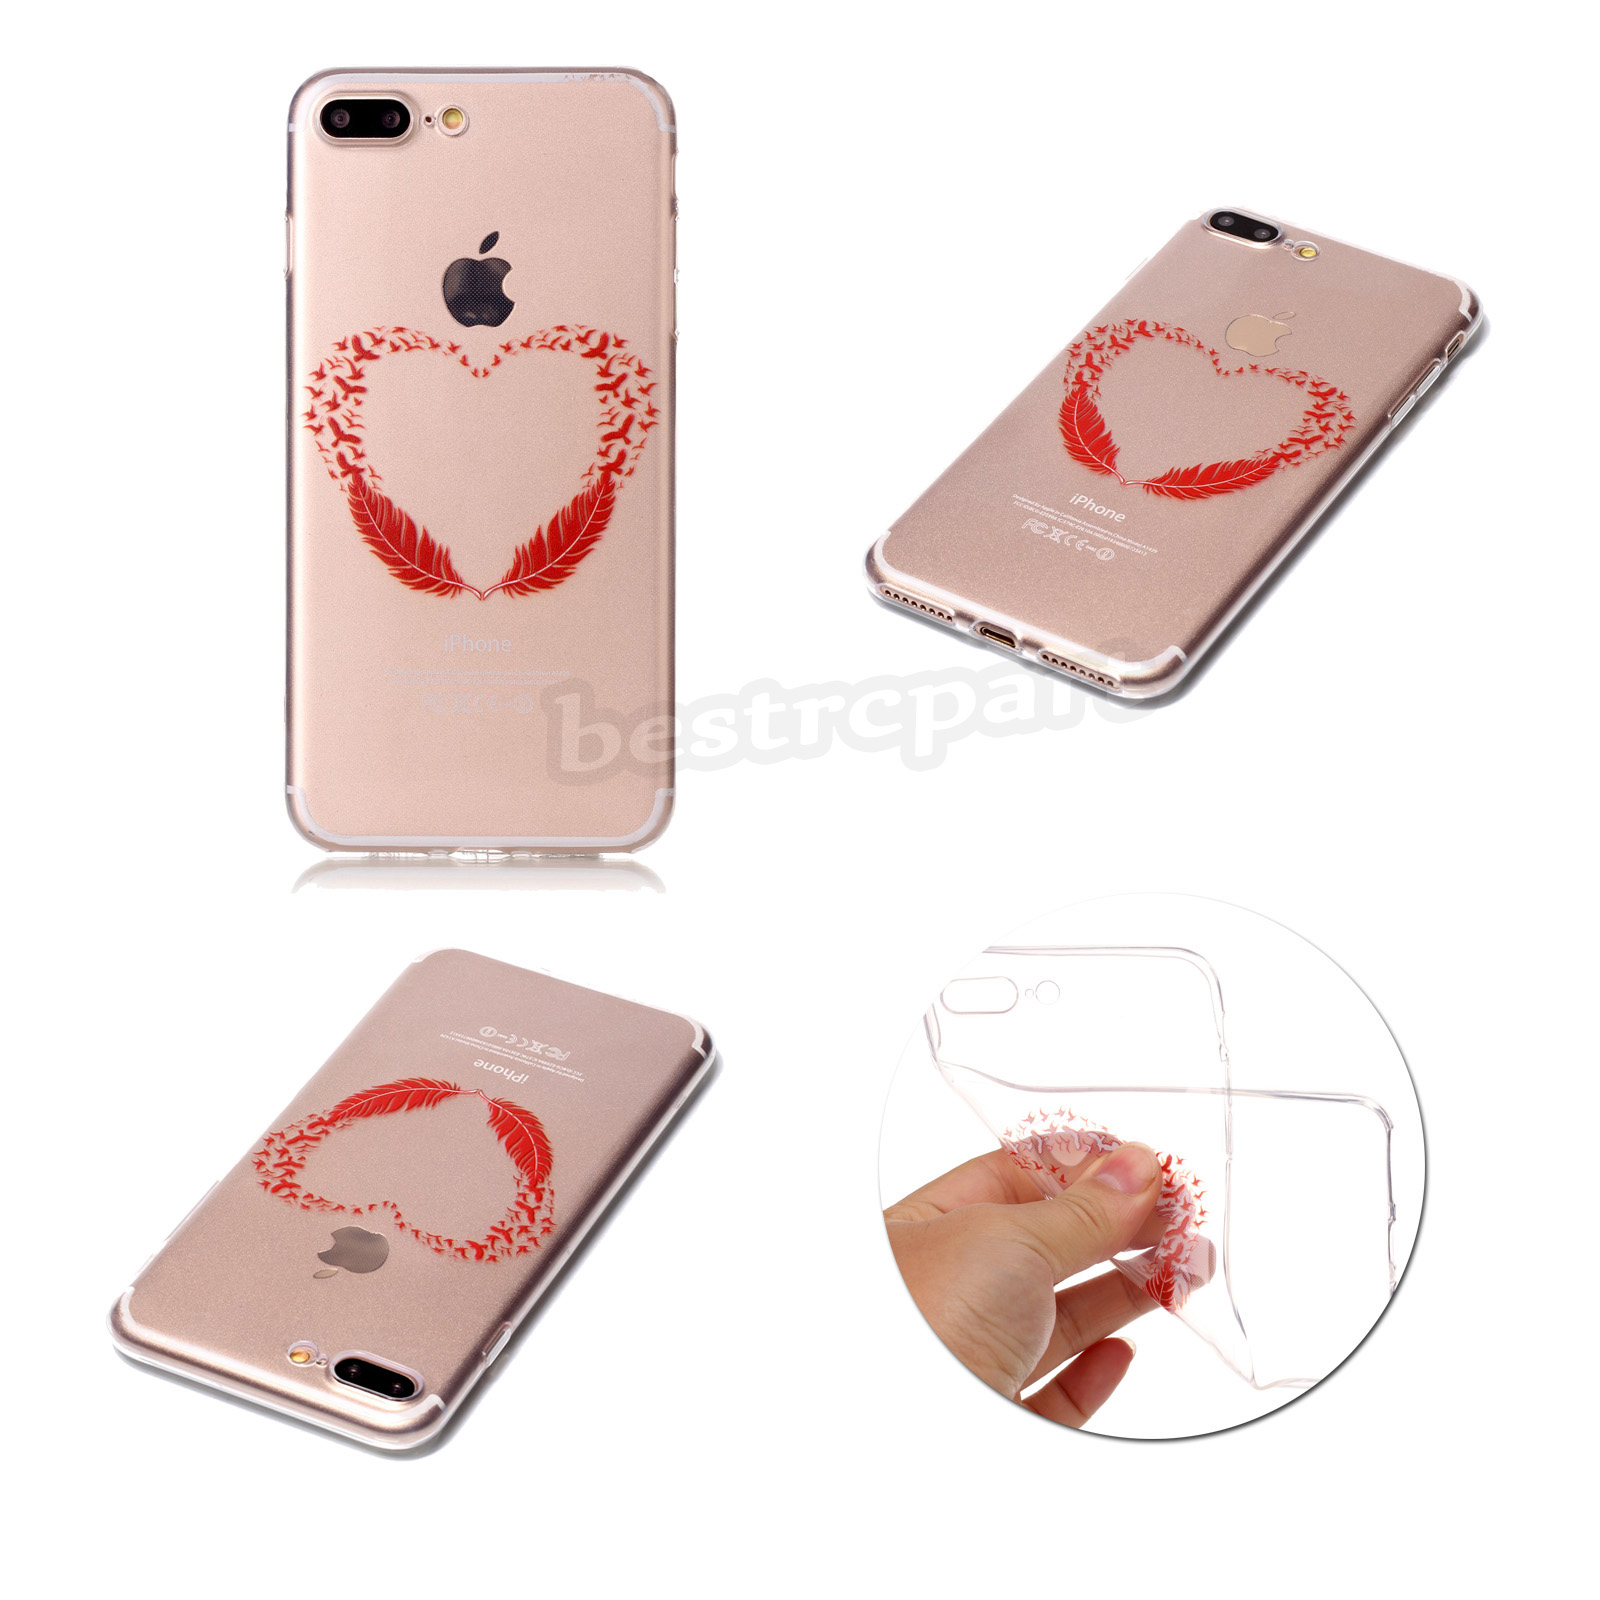 Squishy Case For Iphone 5s : Rubber Pattern Soft TPU Silicone Back Case Cover For iPhone 5S 6 6S 7 Plus SE eBay